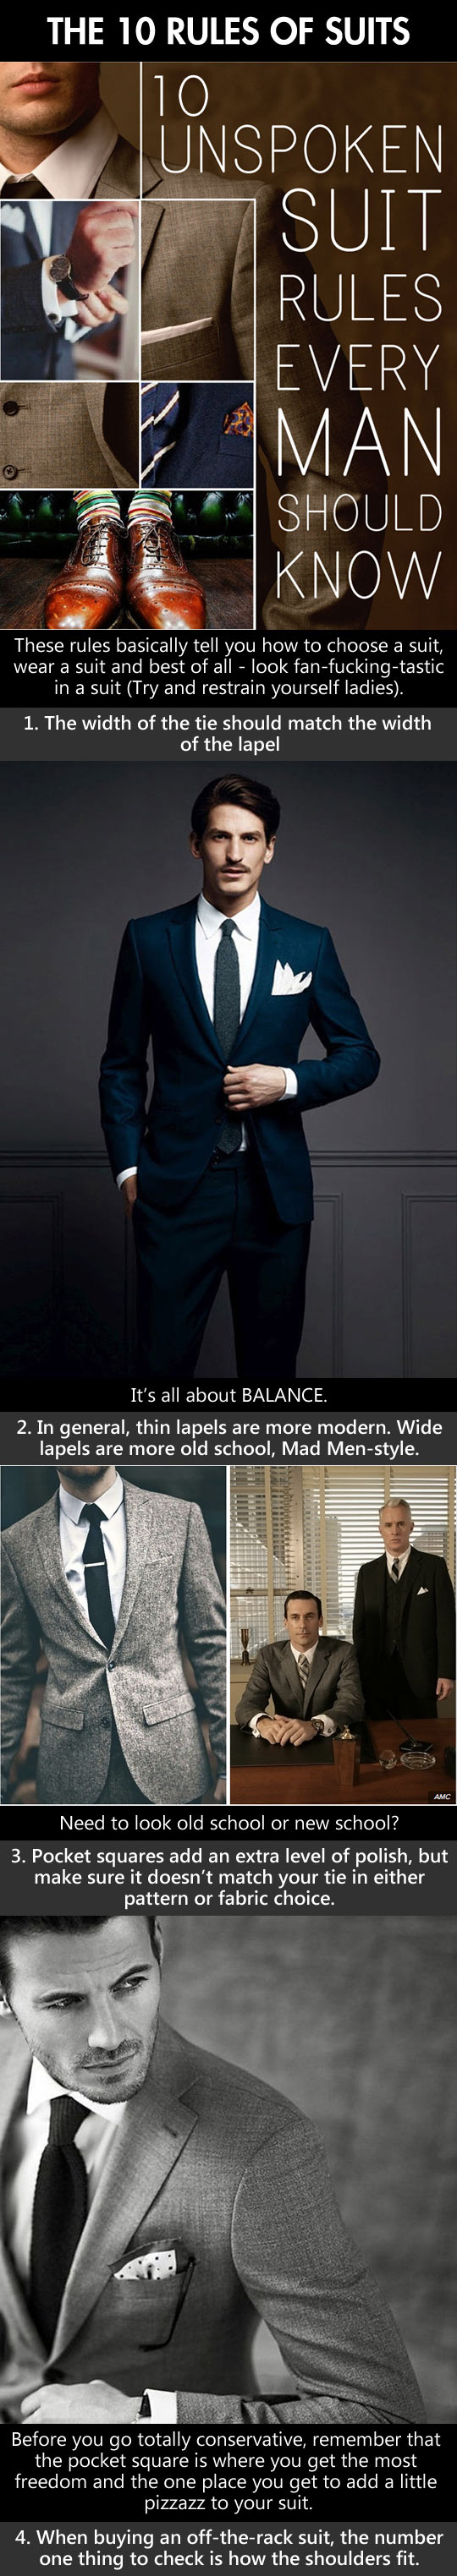 funny-suit-man-rules-shoes-tie